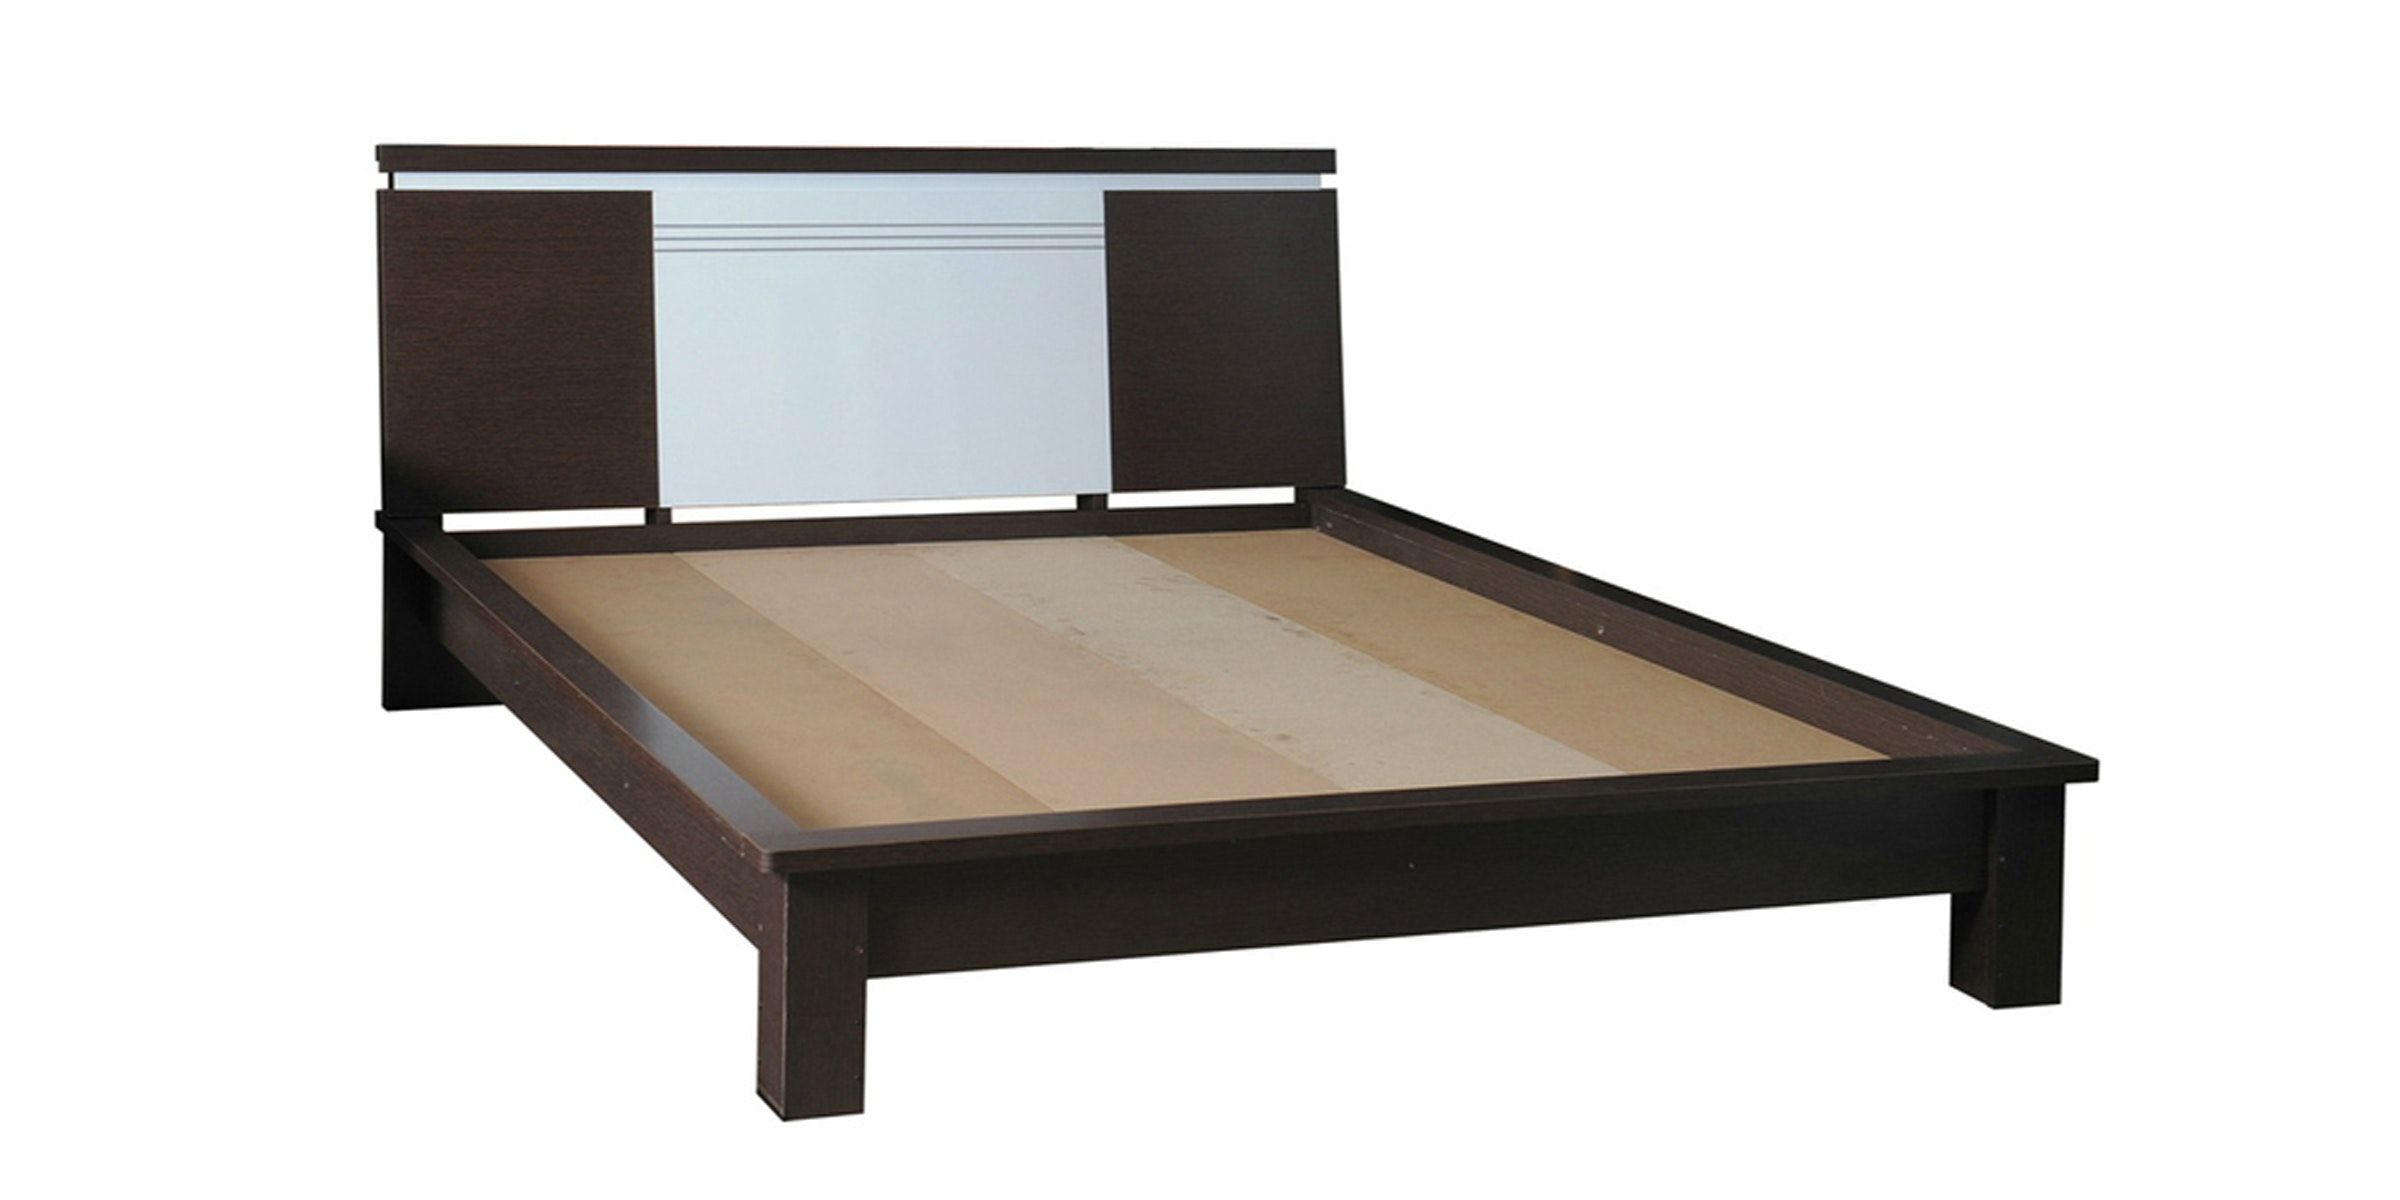 Graver Anata Ranjang Double Bed (King Size)